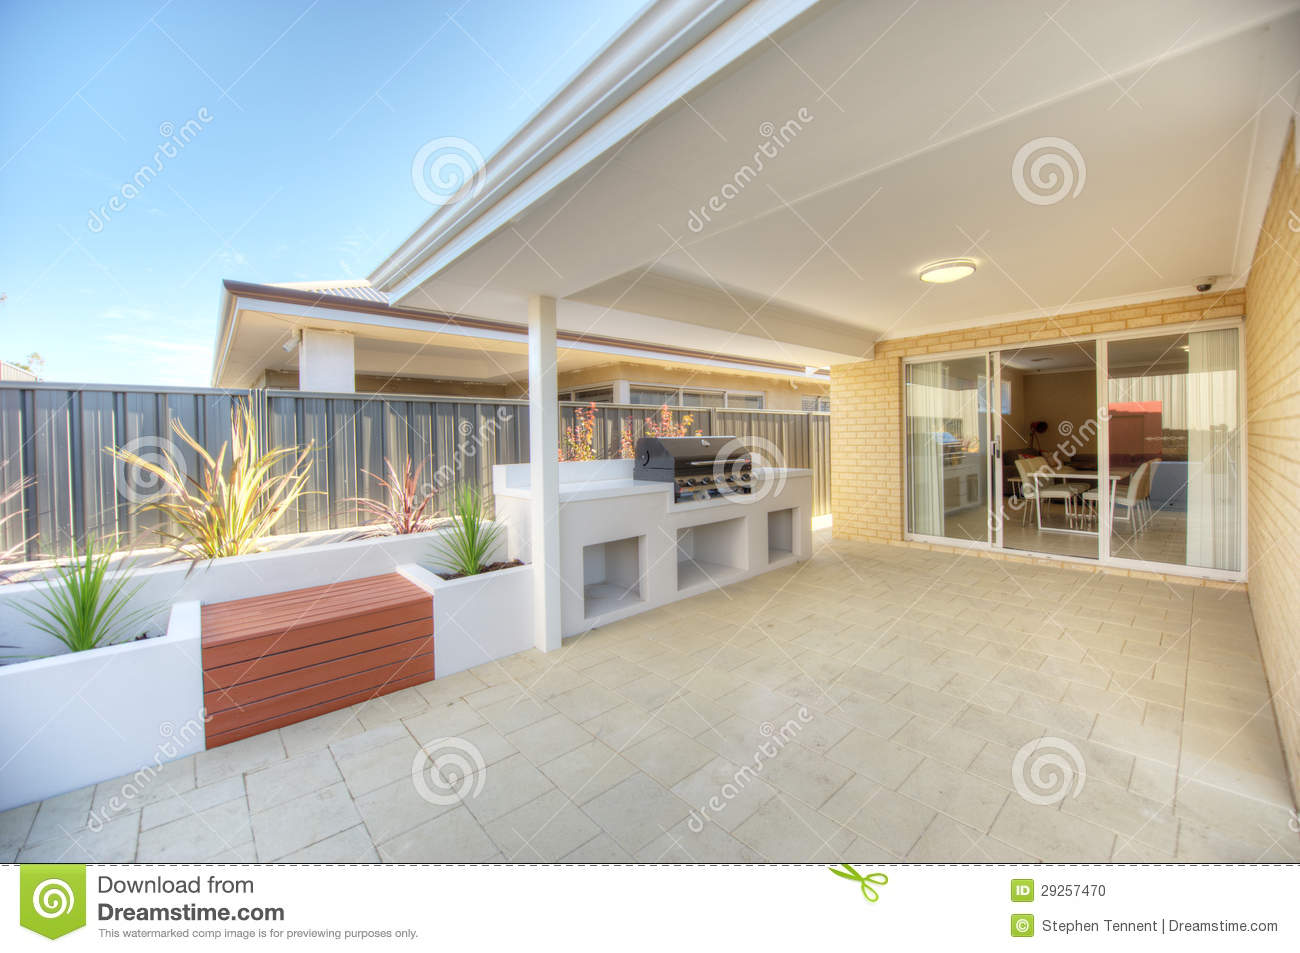 Outdoor alfresco eating and entertaining area with oven and wooden ...